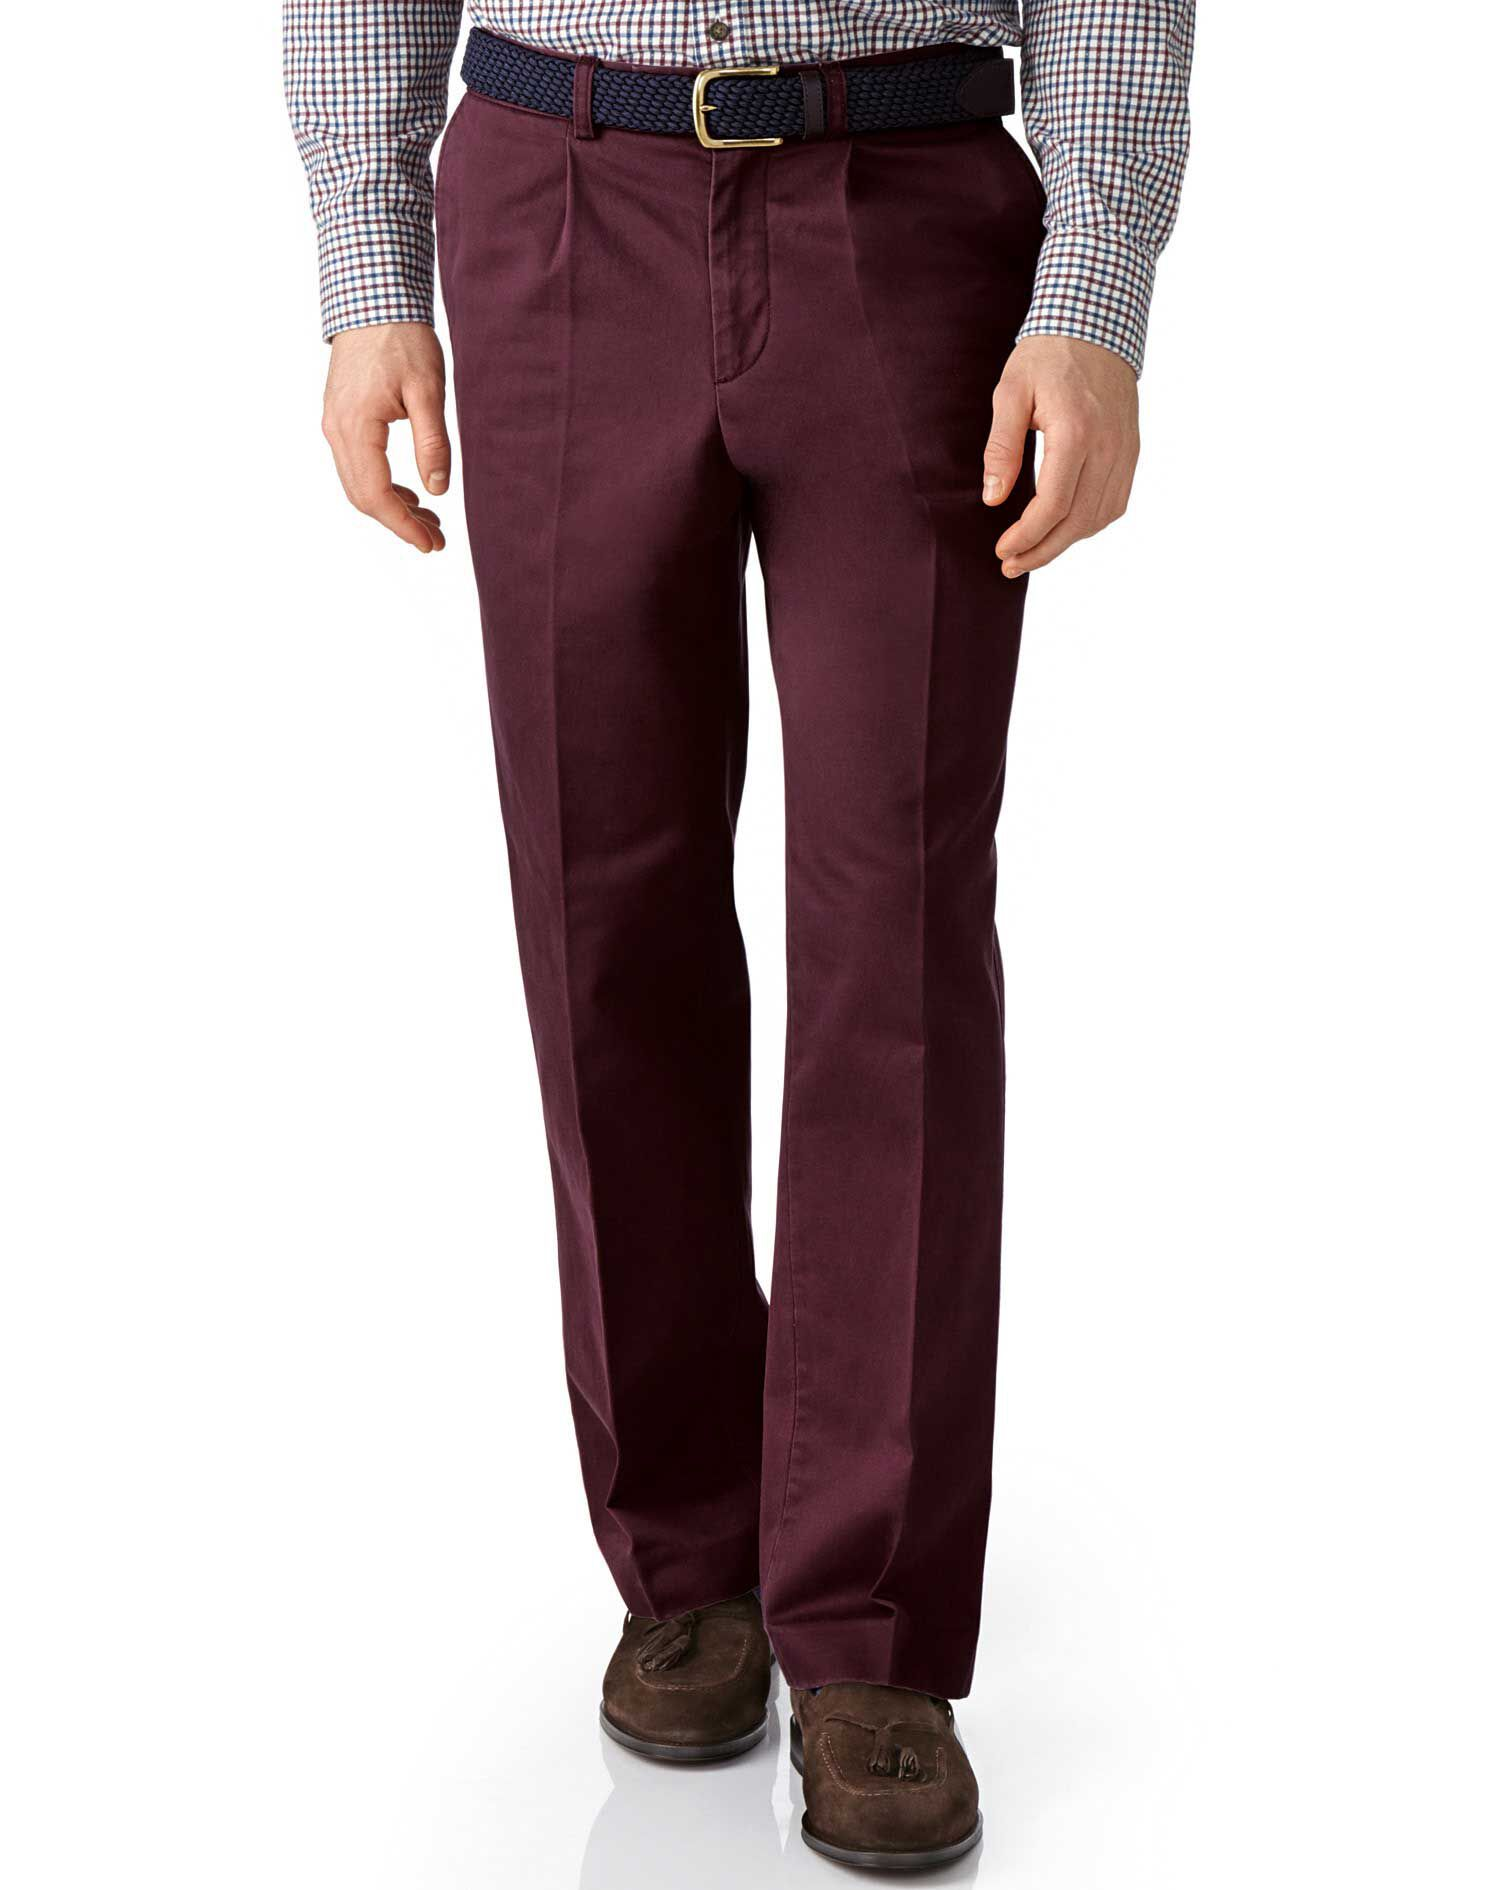 Wine Classic Fit Single Pleat Cotton Chino Trousers Size W34 L38 by Charles Tyrwhitt